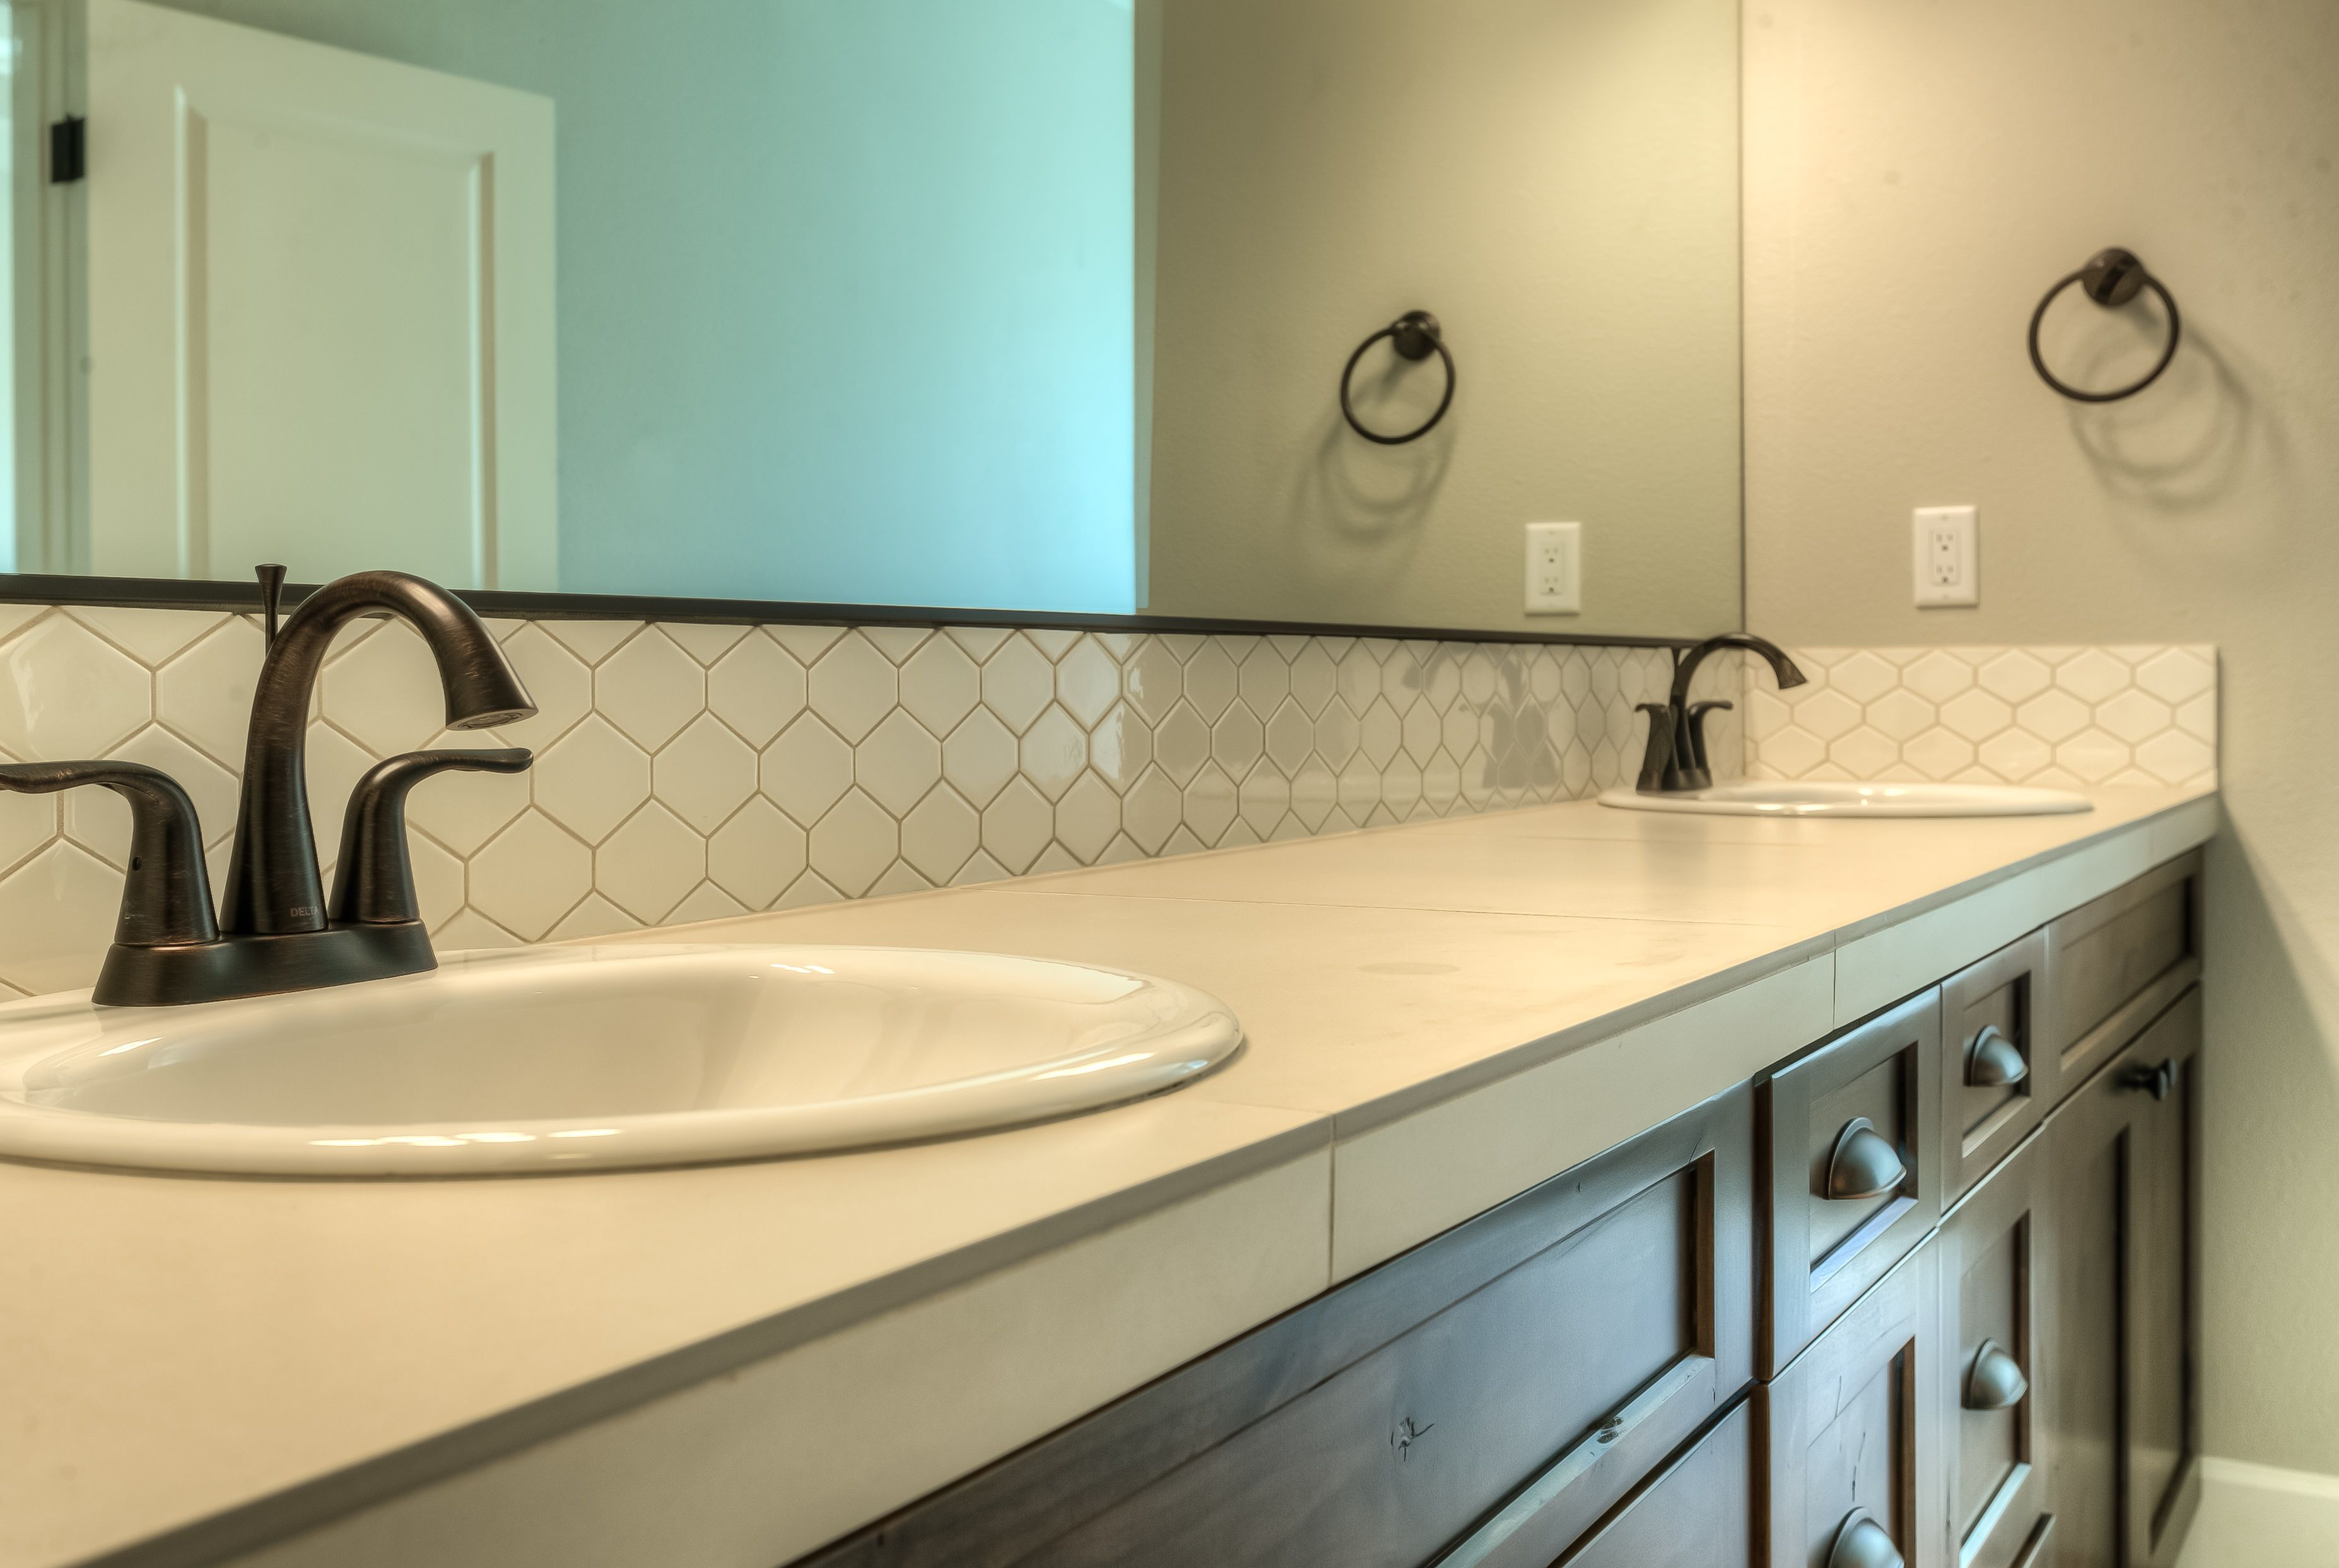 pentagon shaped backsplash tile